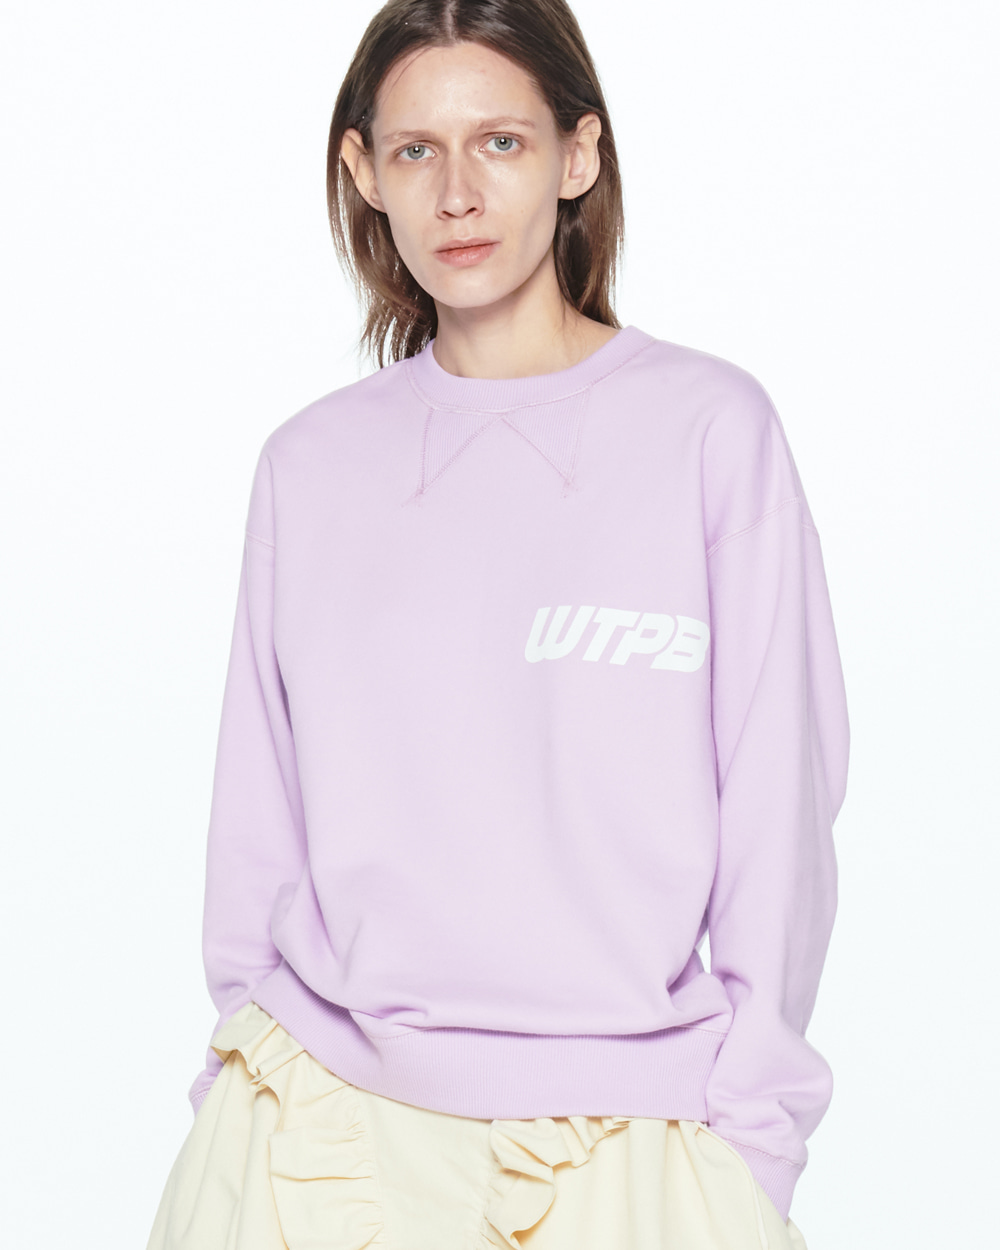 PF20 WTPB SWEAT SHIRT